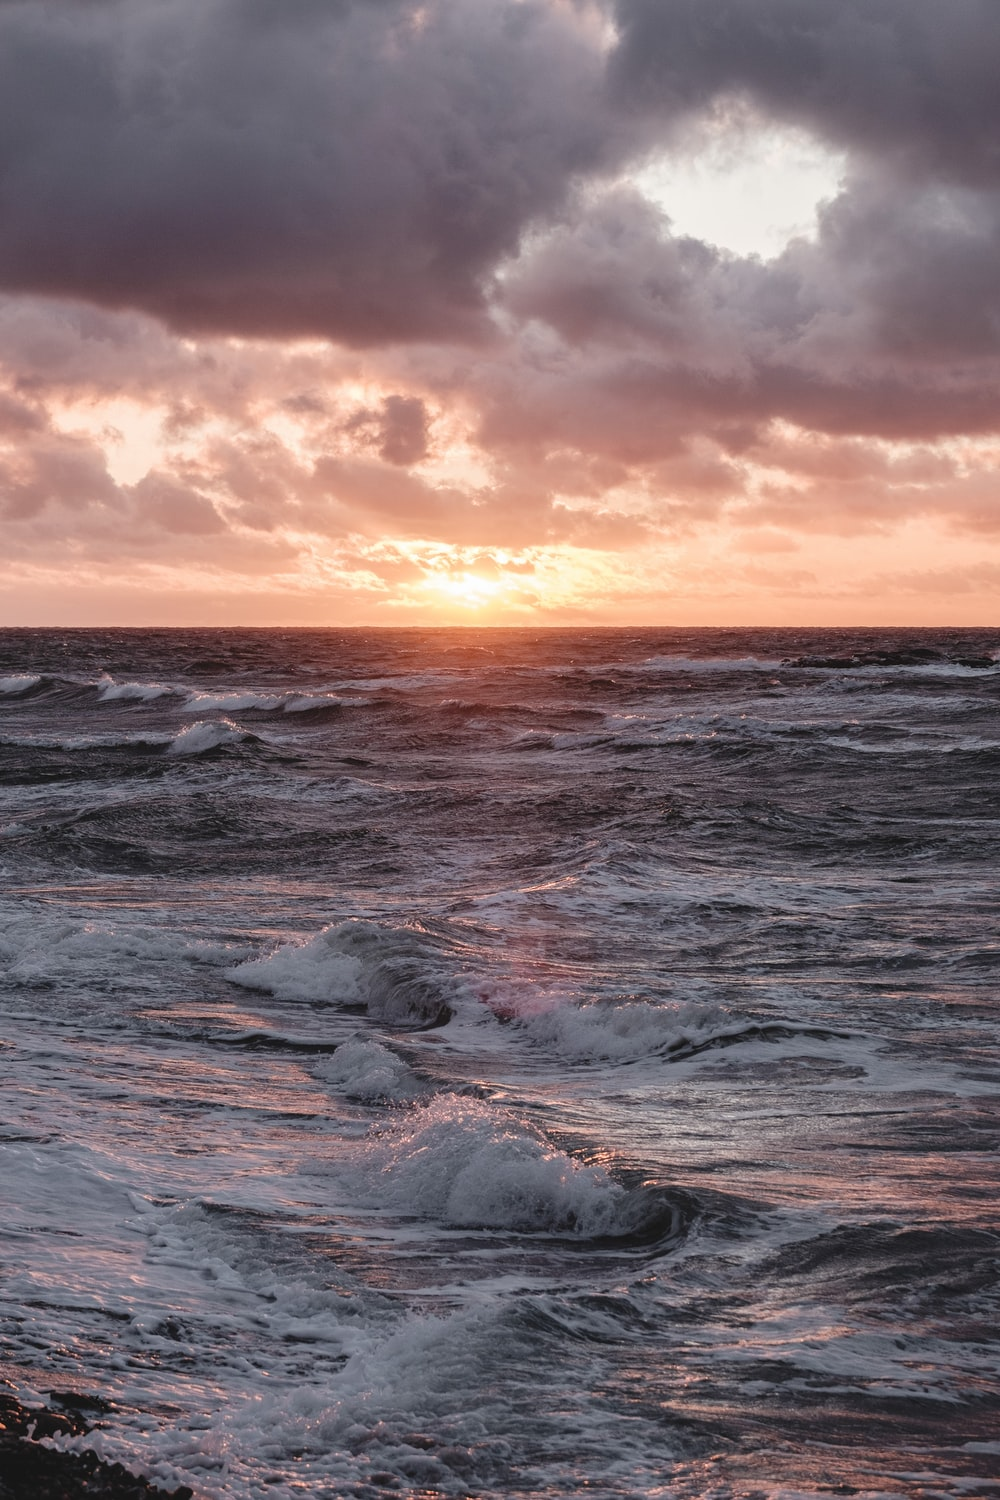 water waves during dawn